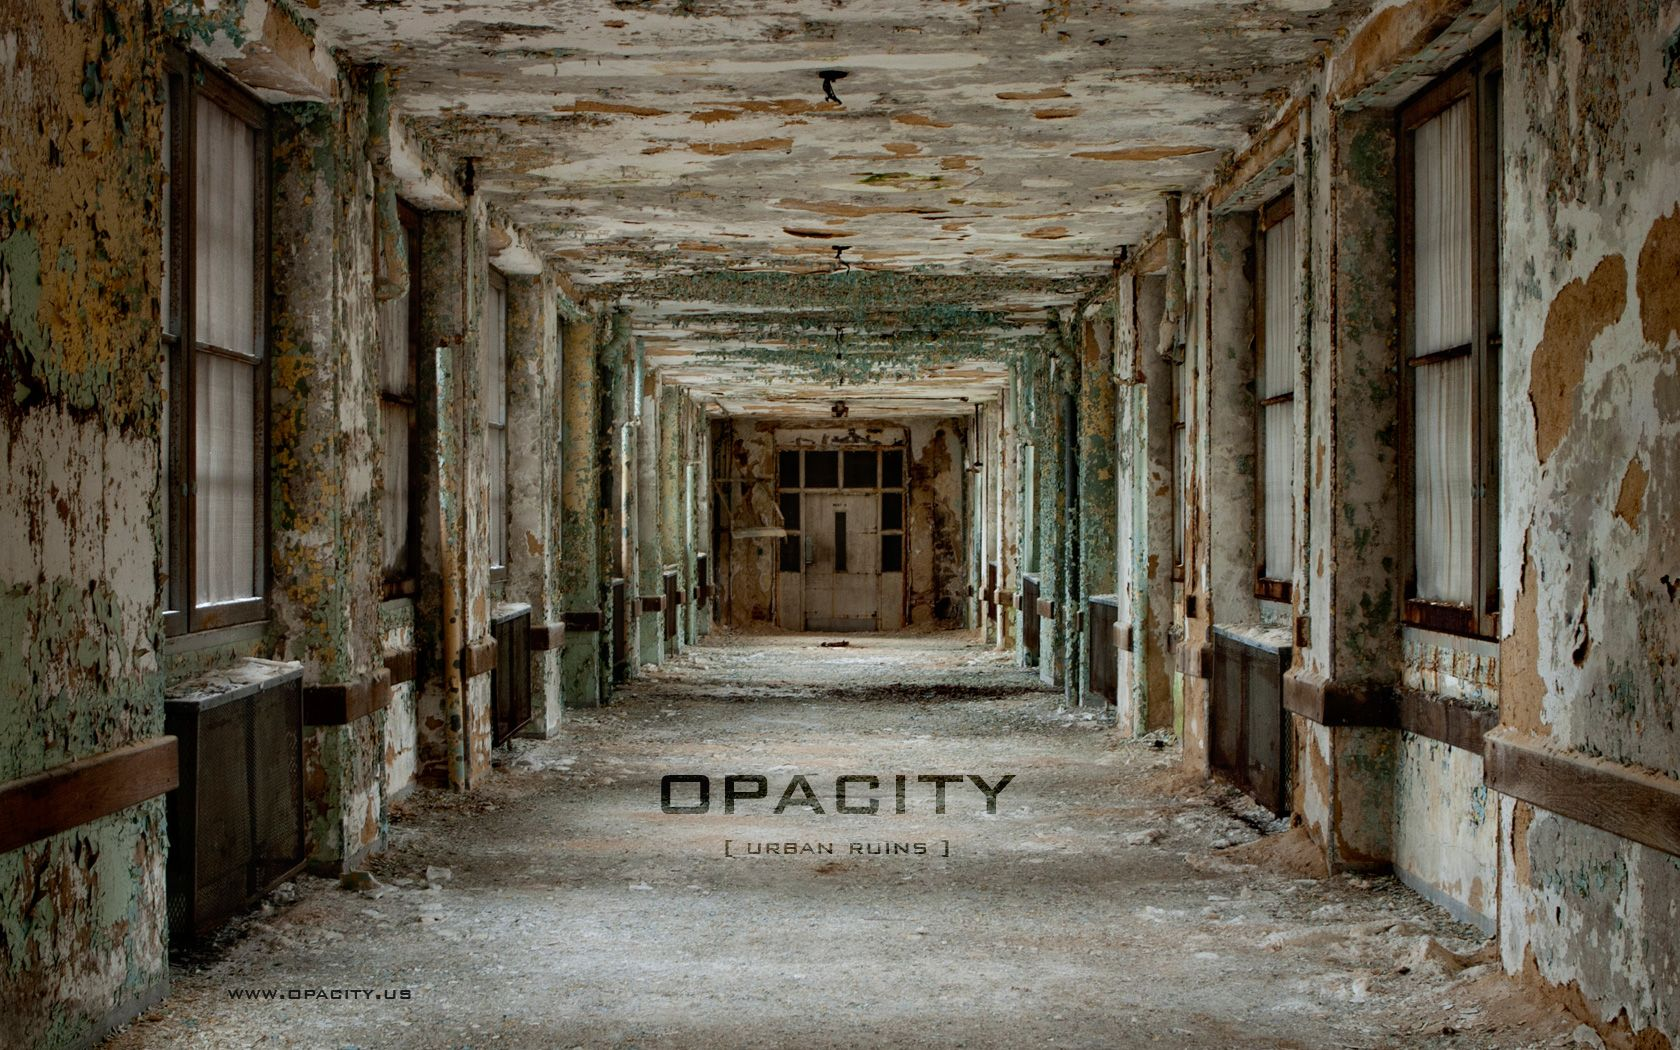 Image result for opacity abandoned places images